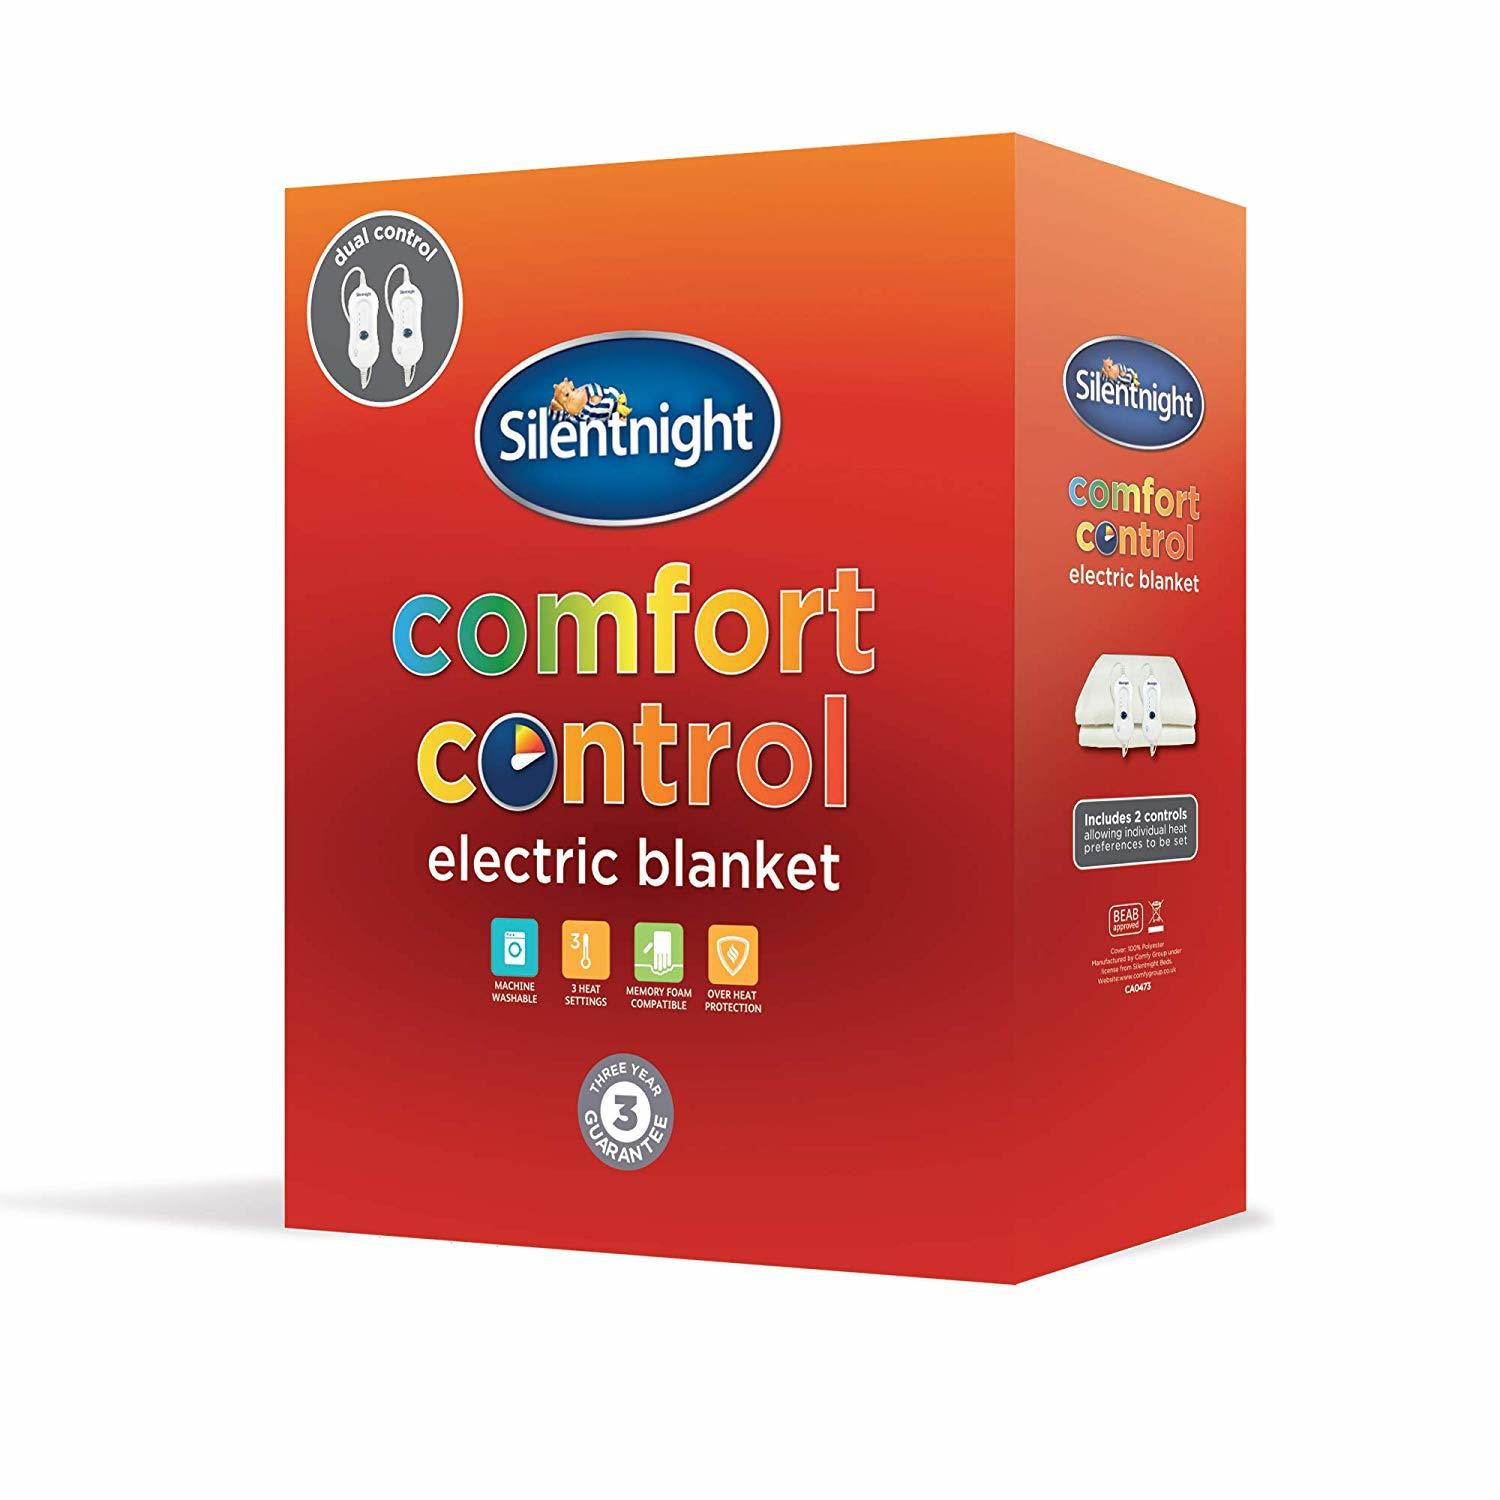 Silentnight Dual Control Double Electric Blanket Comfort Control